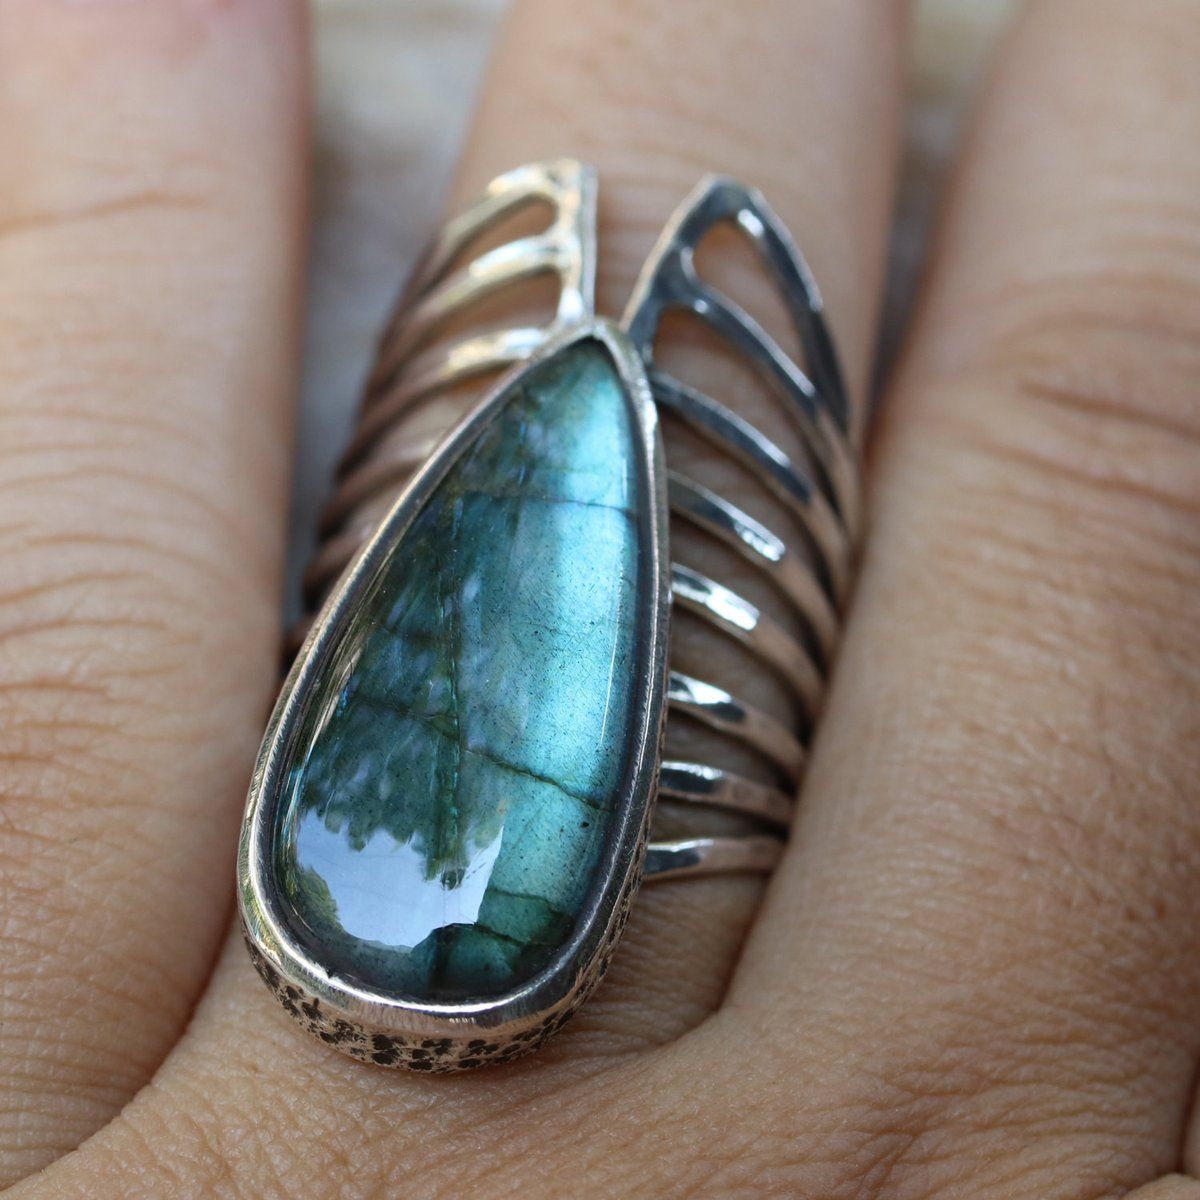 Teardrop cabochon labradorite ring in silver bezel setting with ...